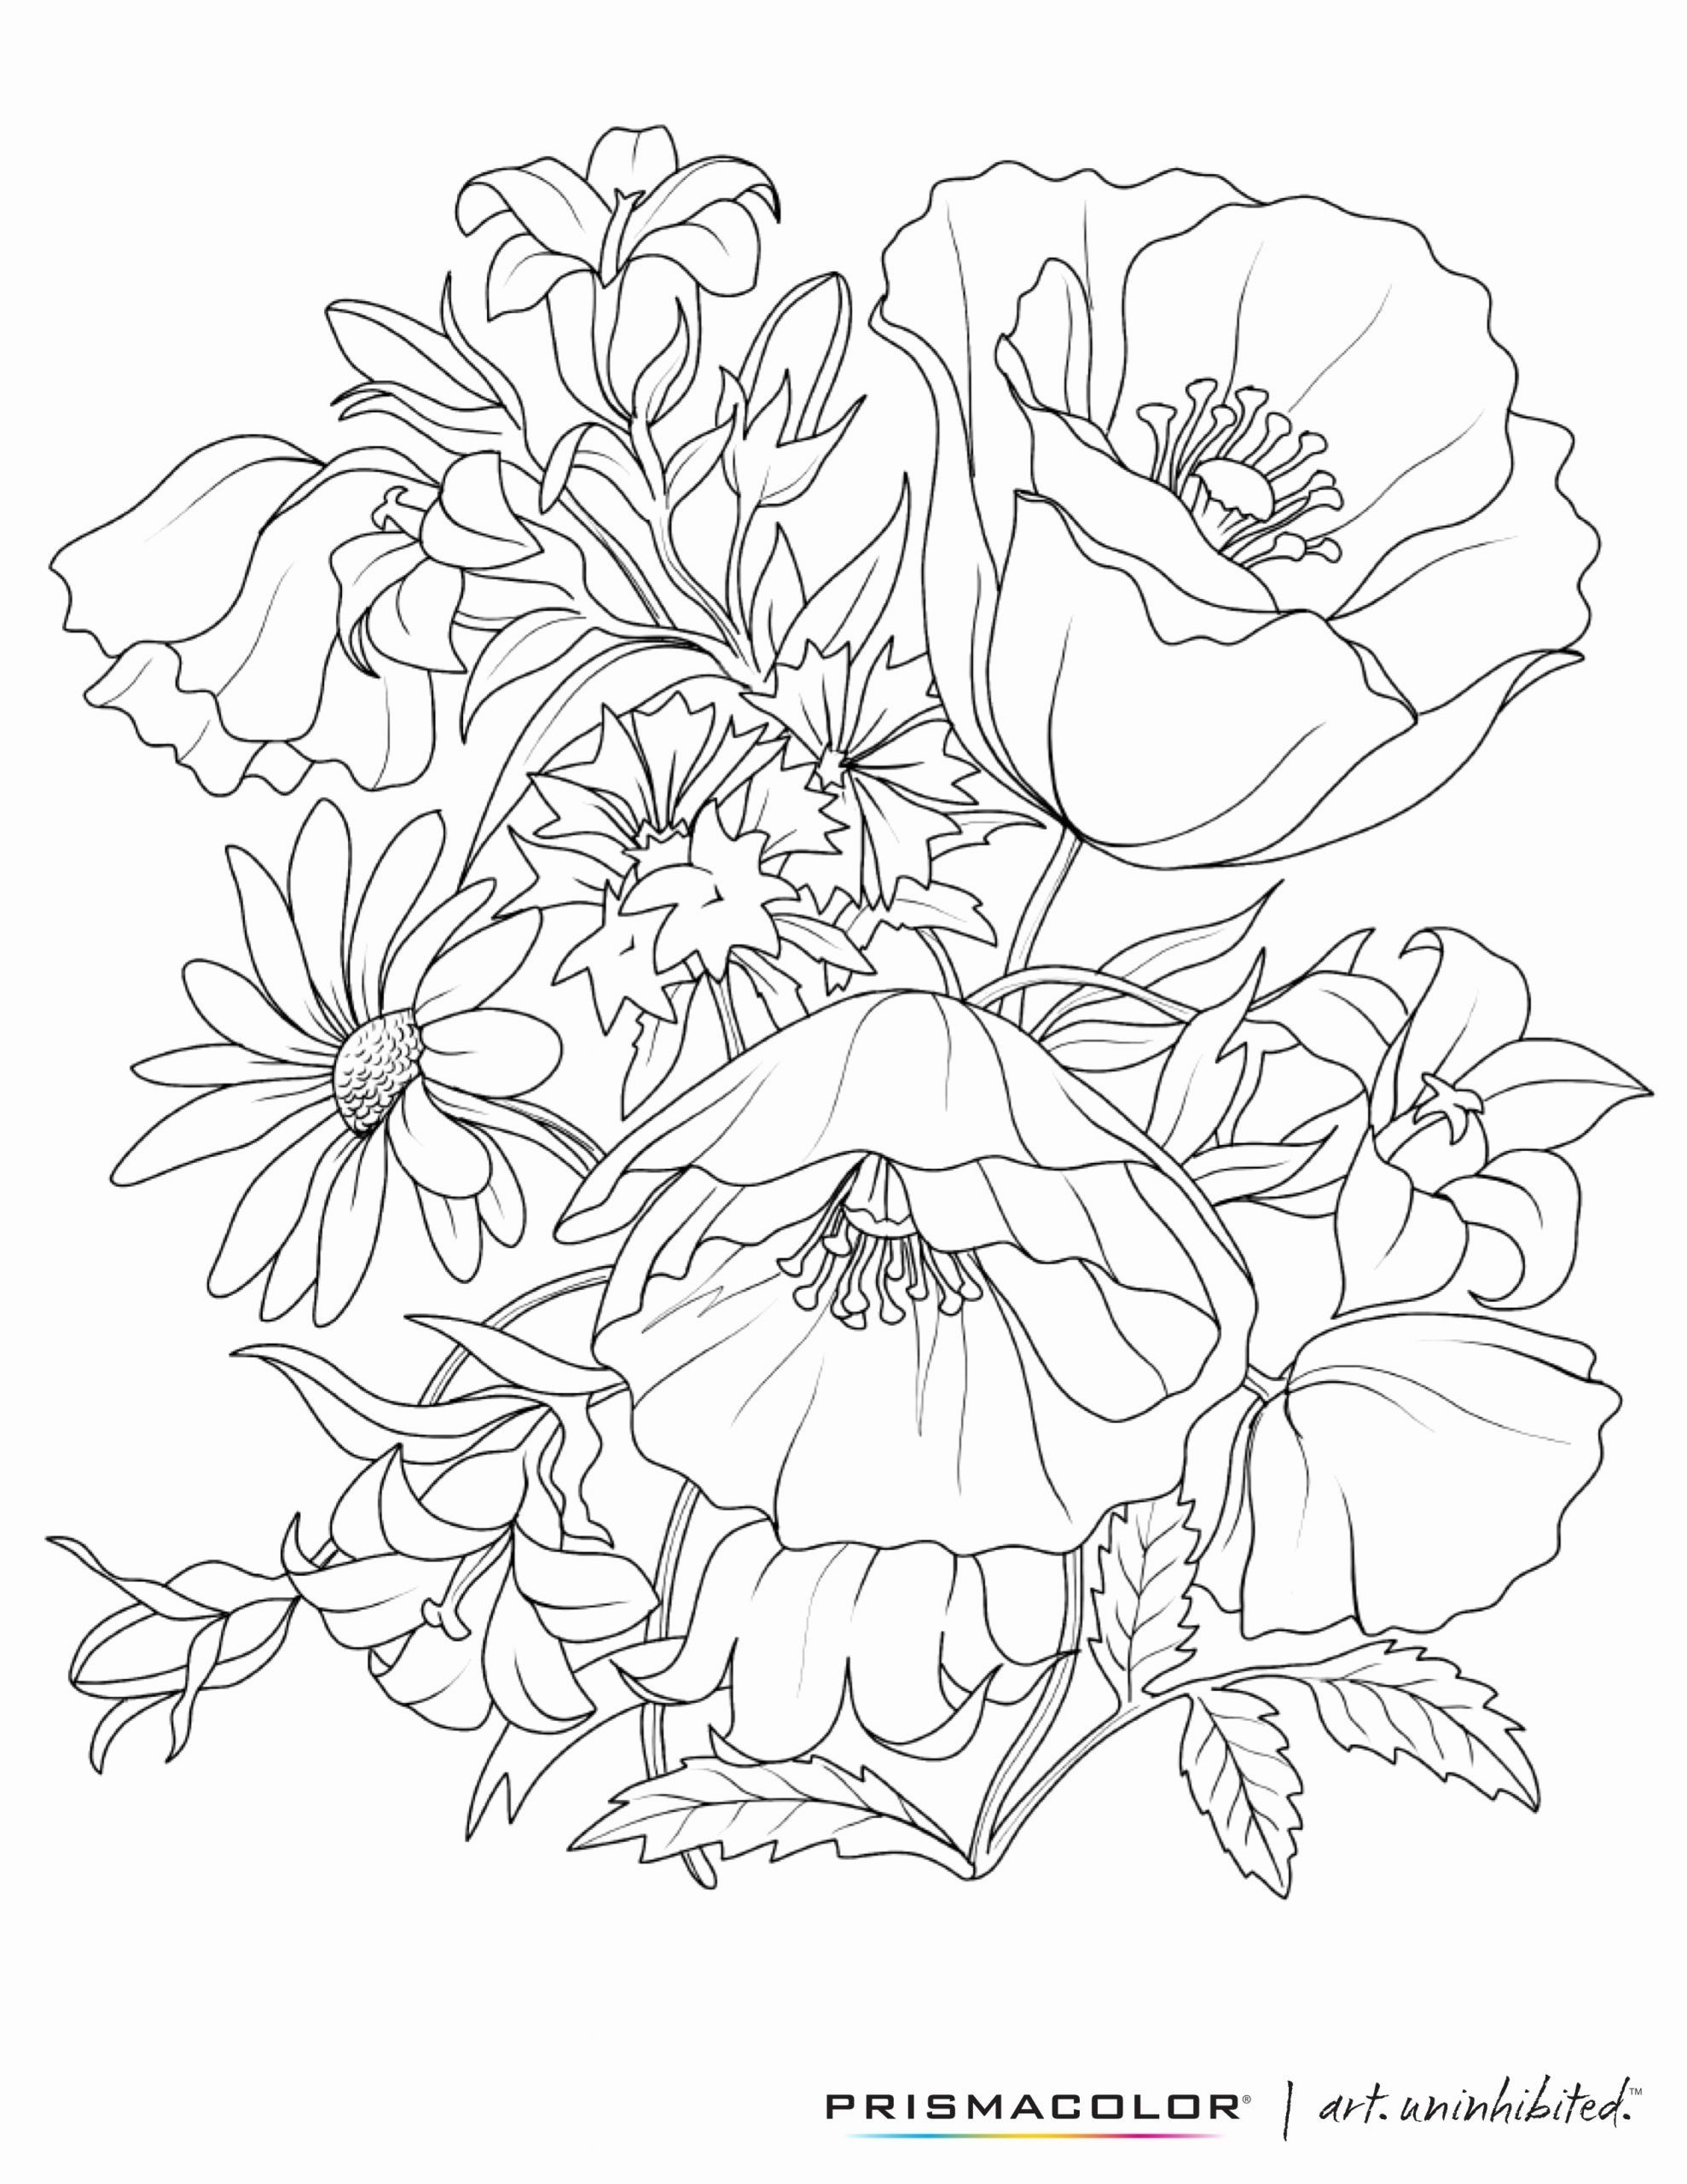 Printable Adult Flower Coloring Pages In 2020 Coloring Pages Adult Coloring Pages Coloring Books